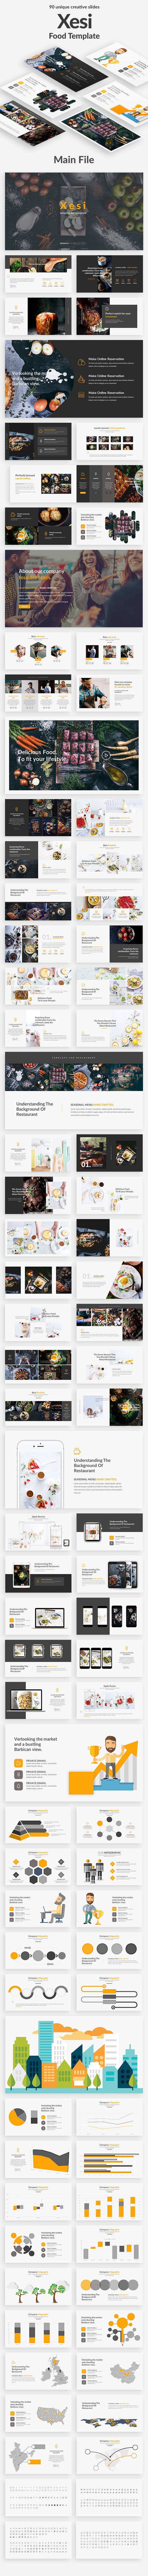 Xesi Food Keynote Template - Creative Keynote Templates